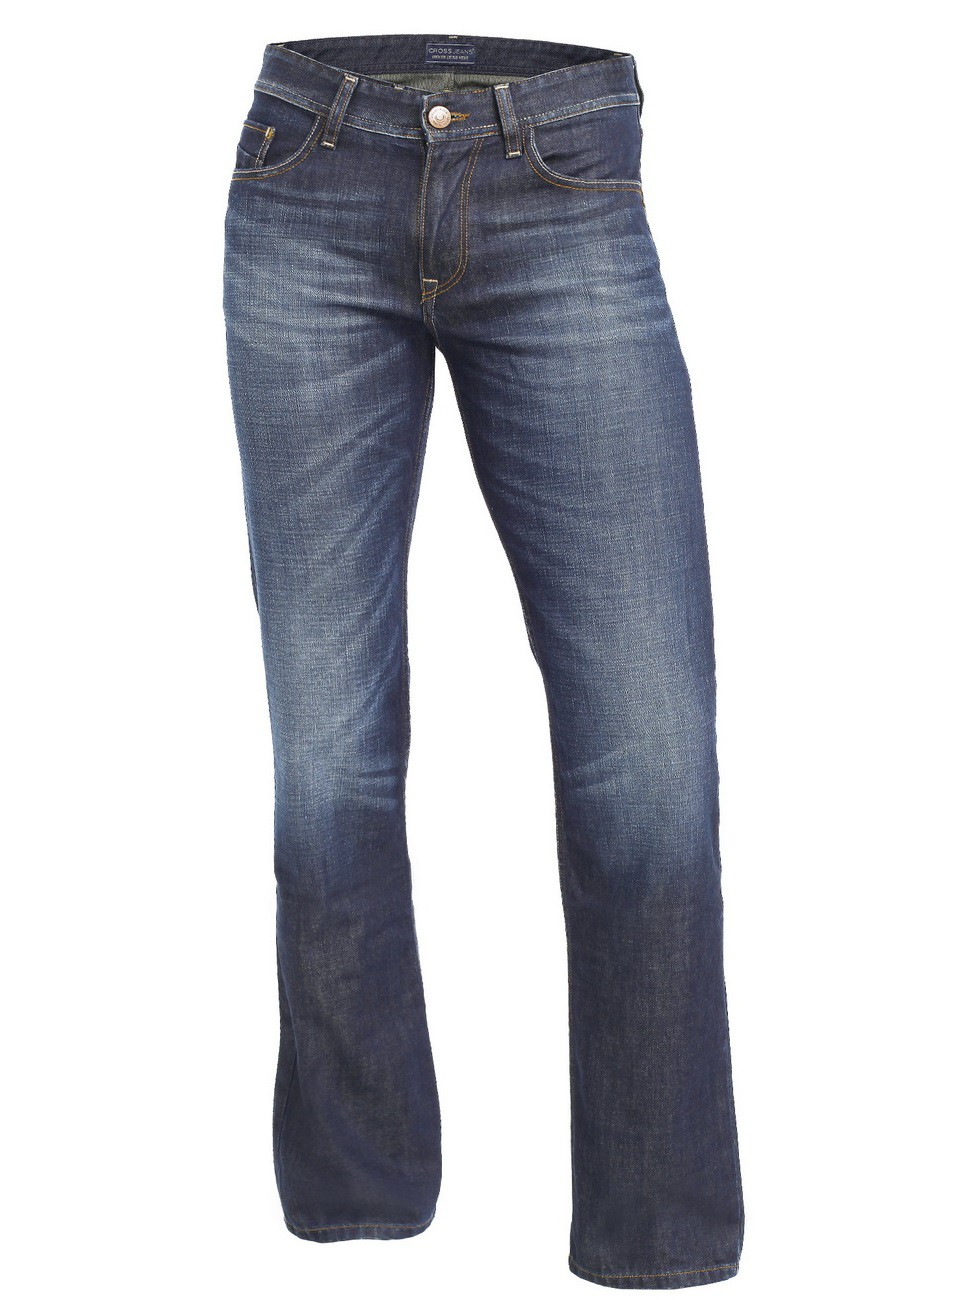 Cross Herren Jeans Antonio - Relax Fit - Rebel Deep Blue Used